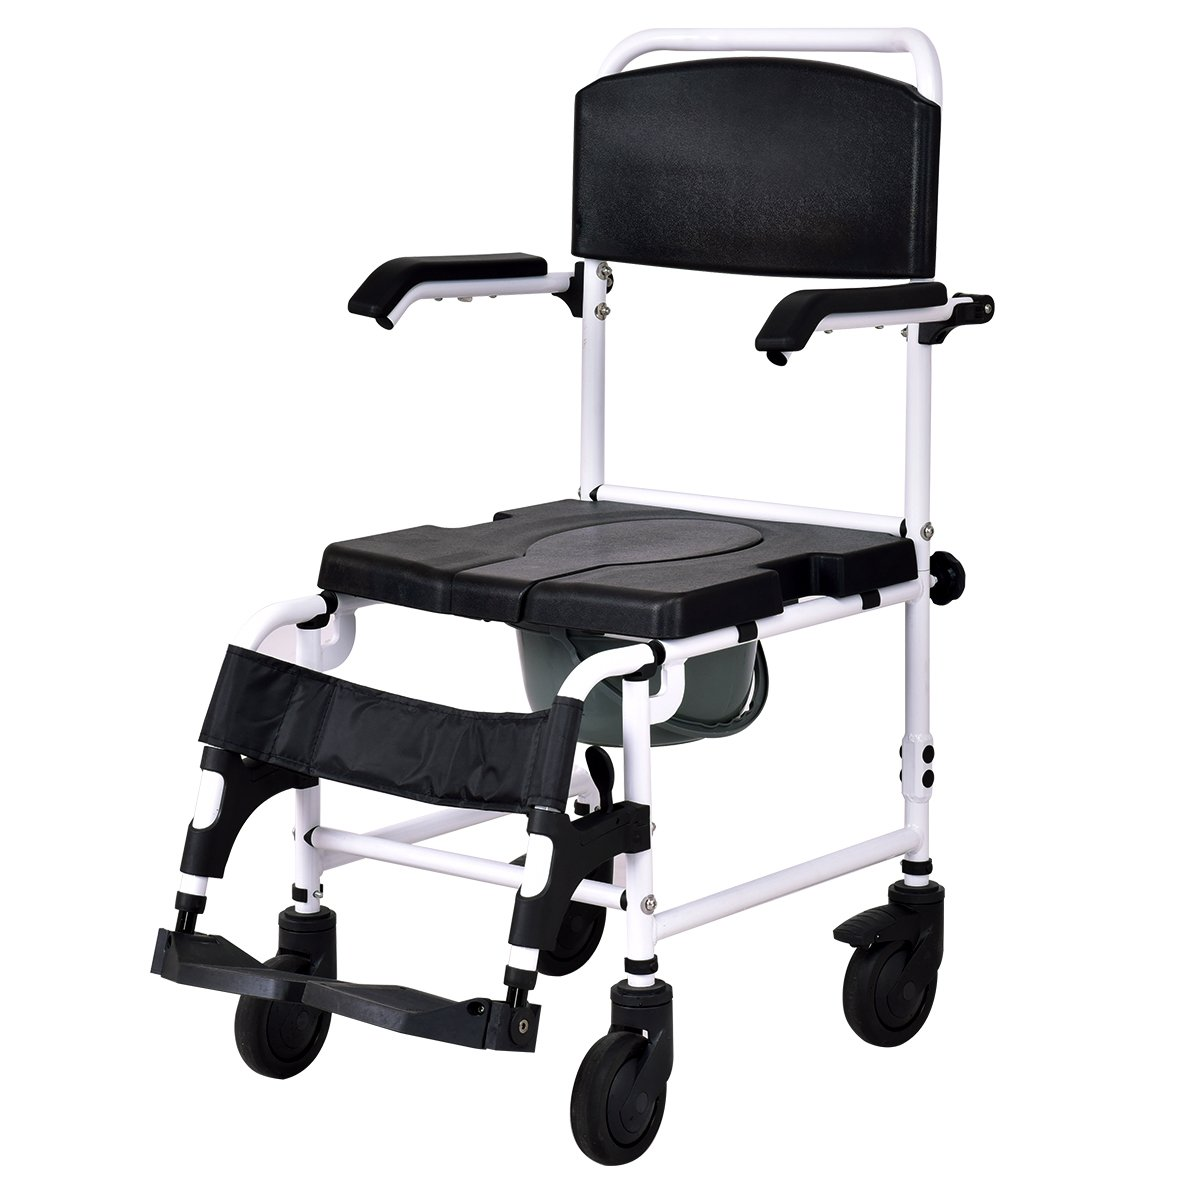 Giantex Shower Wheelchair Over Toilet with Commode Lift Arms Bathroom Sturdy Aluminum Frame PU Leather Padded Seat Backrest Fast-Remove Legrest Footrest Patient Wheelchairs w/ 5'' Locking Caster, Black